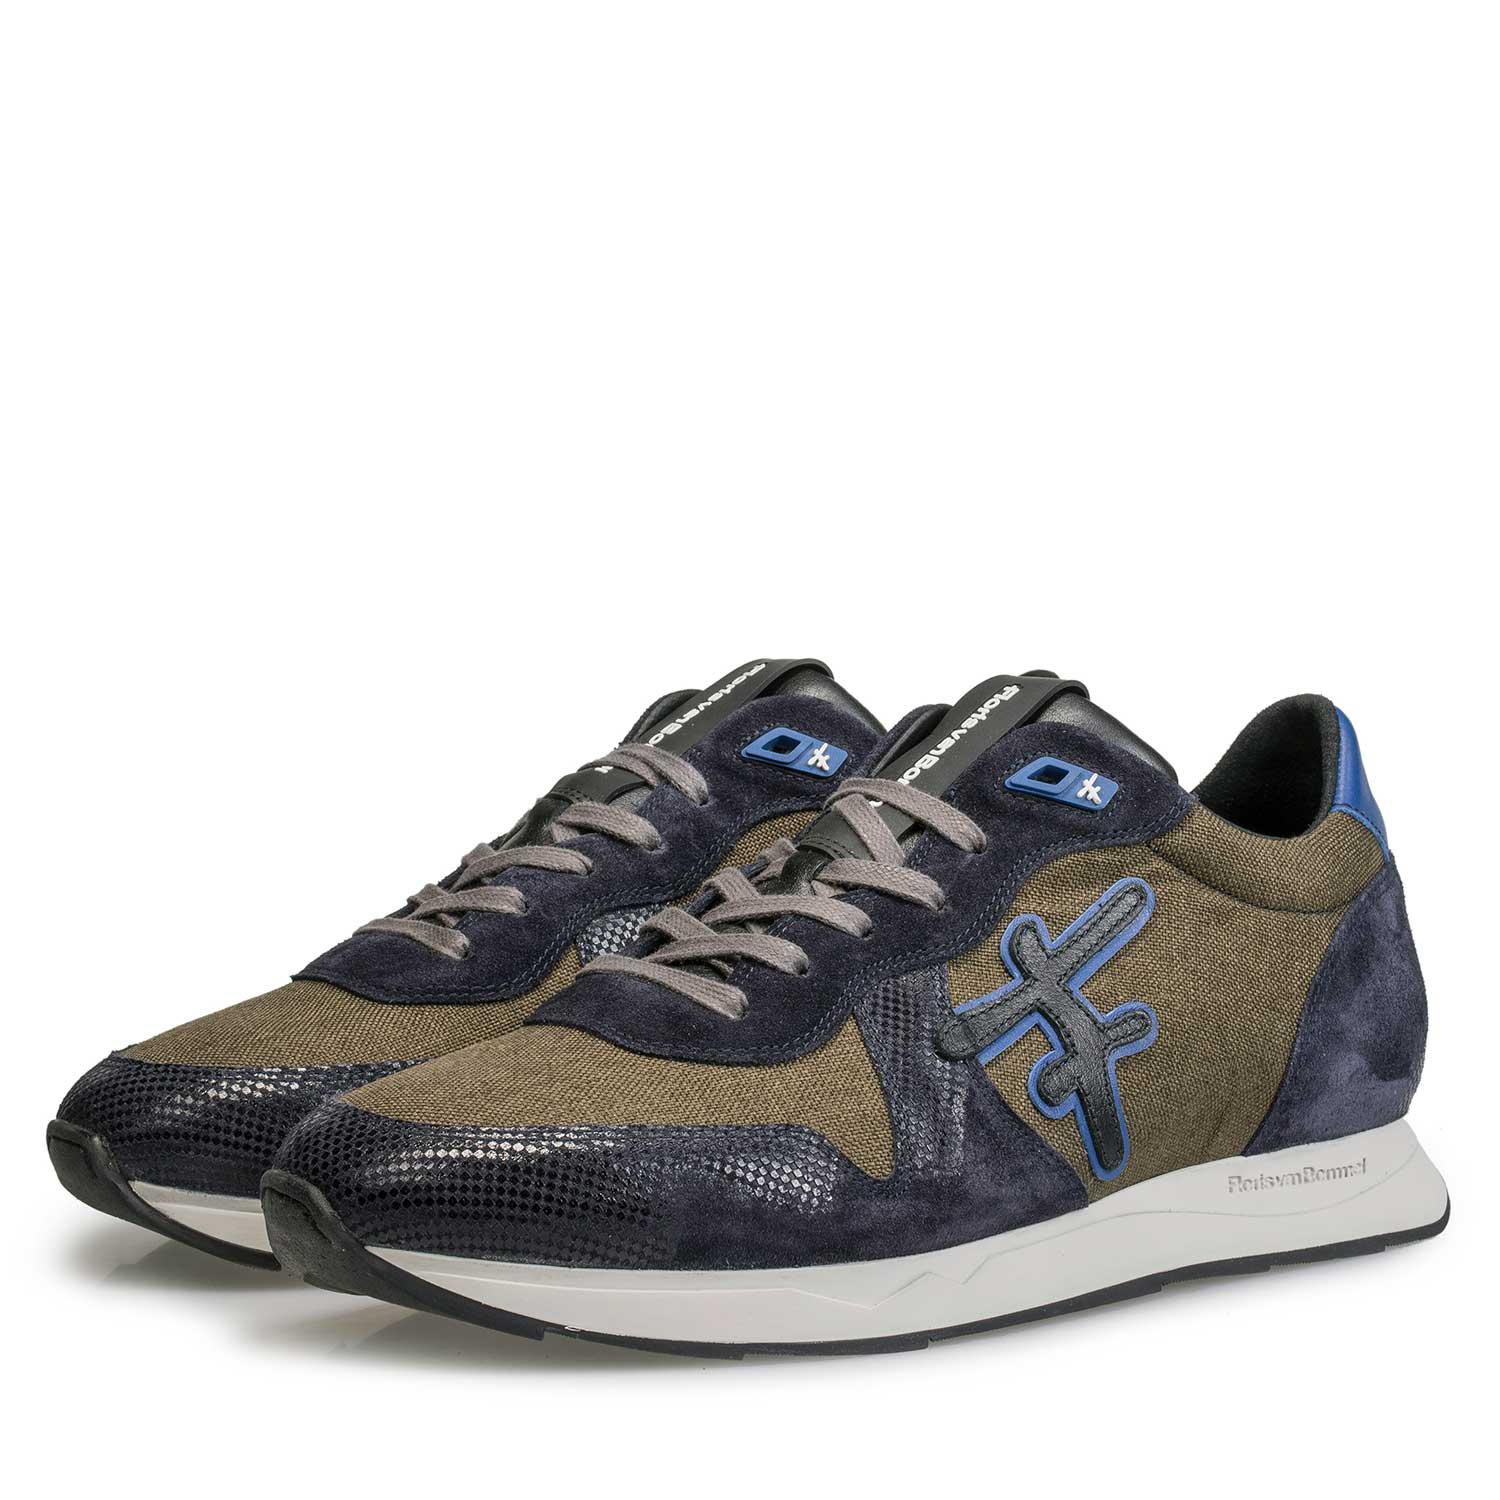 16226/04 - Olive green / Blue sneaker with white jogging sole